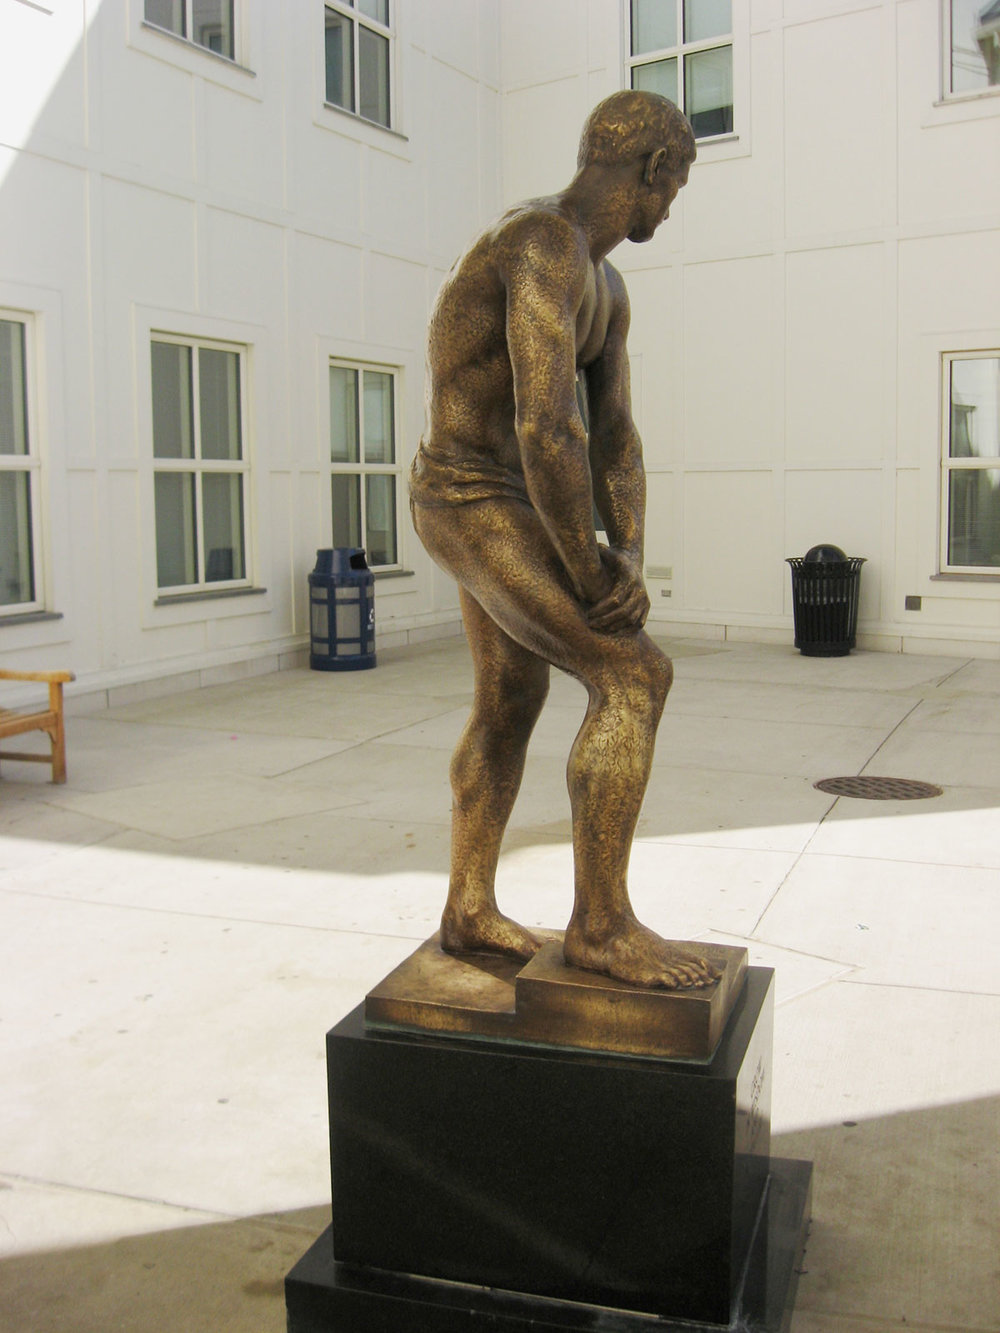 Bronze sculpture loses original finish after abrasive cleanings.